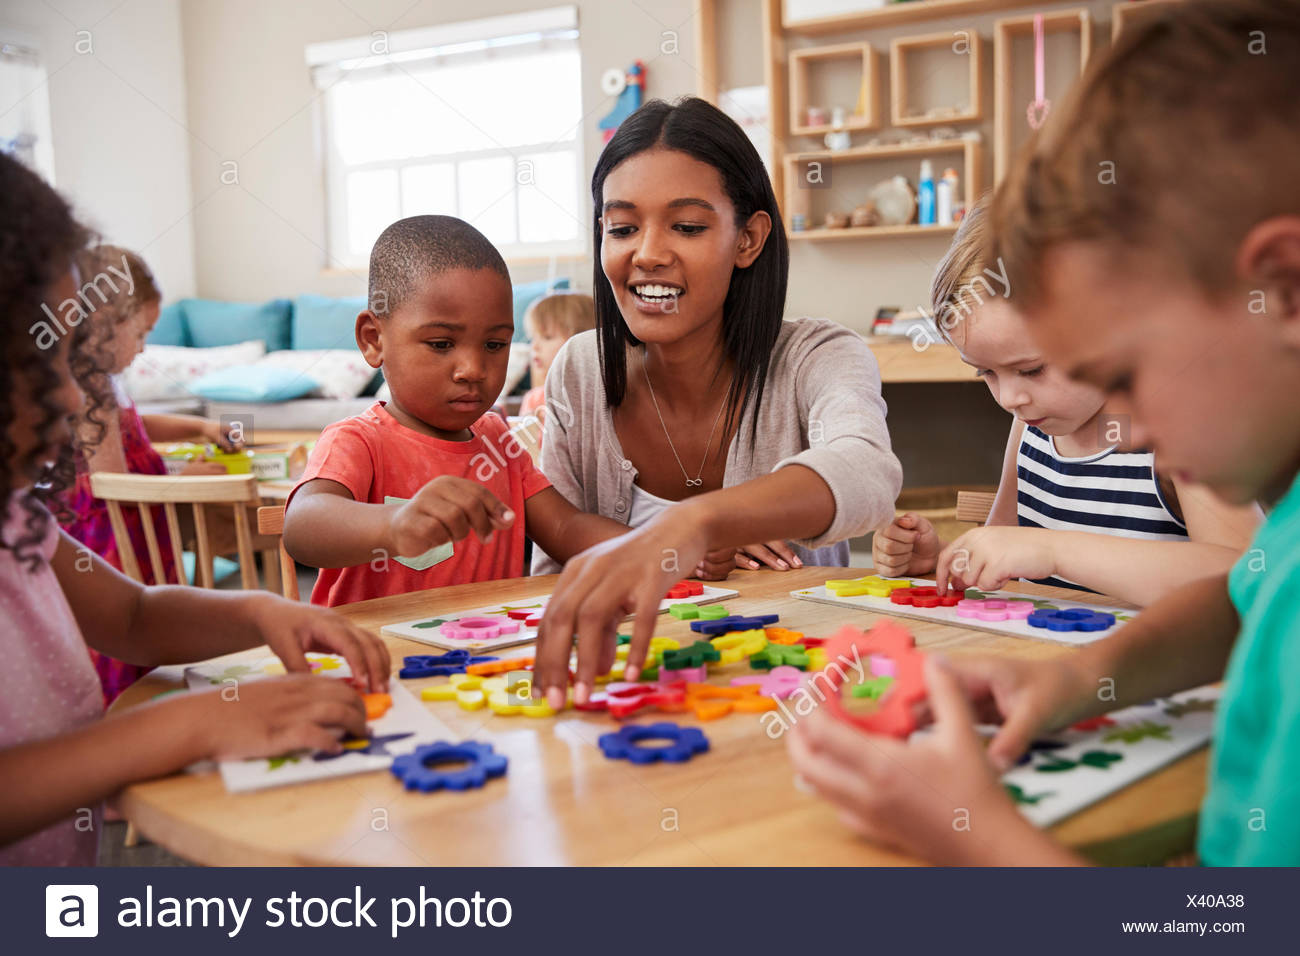 Teacher And Pupils Using Flower Shapes In Montessori School - Stock Image